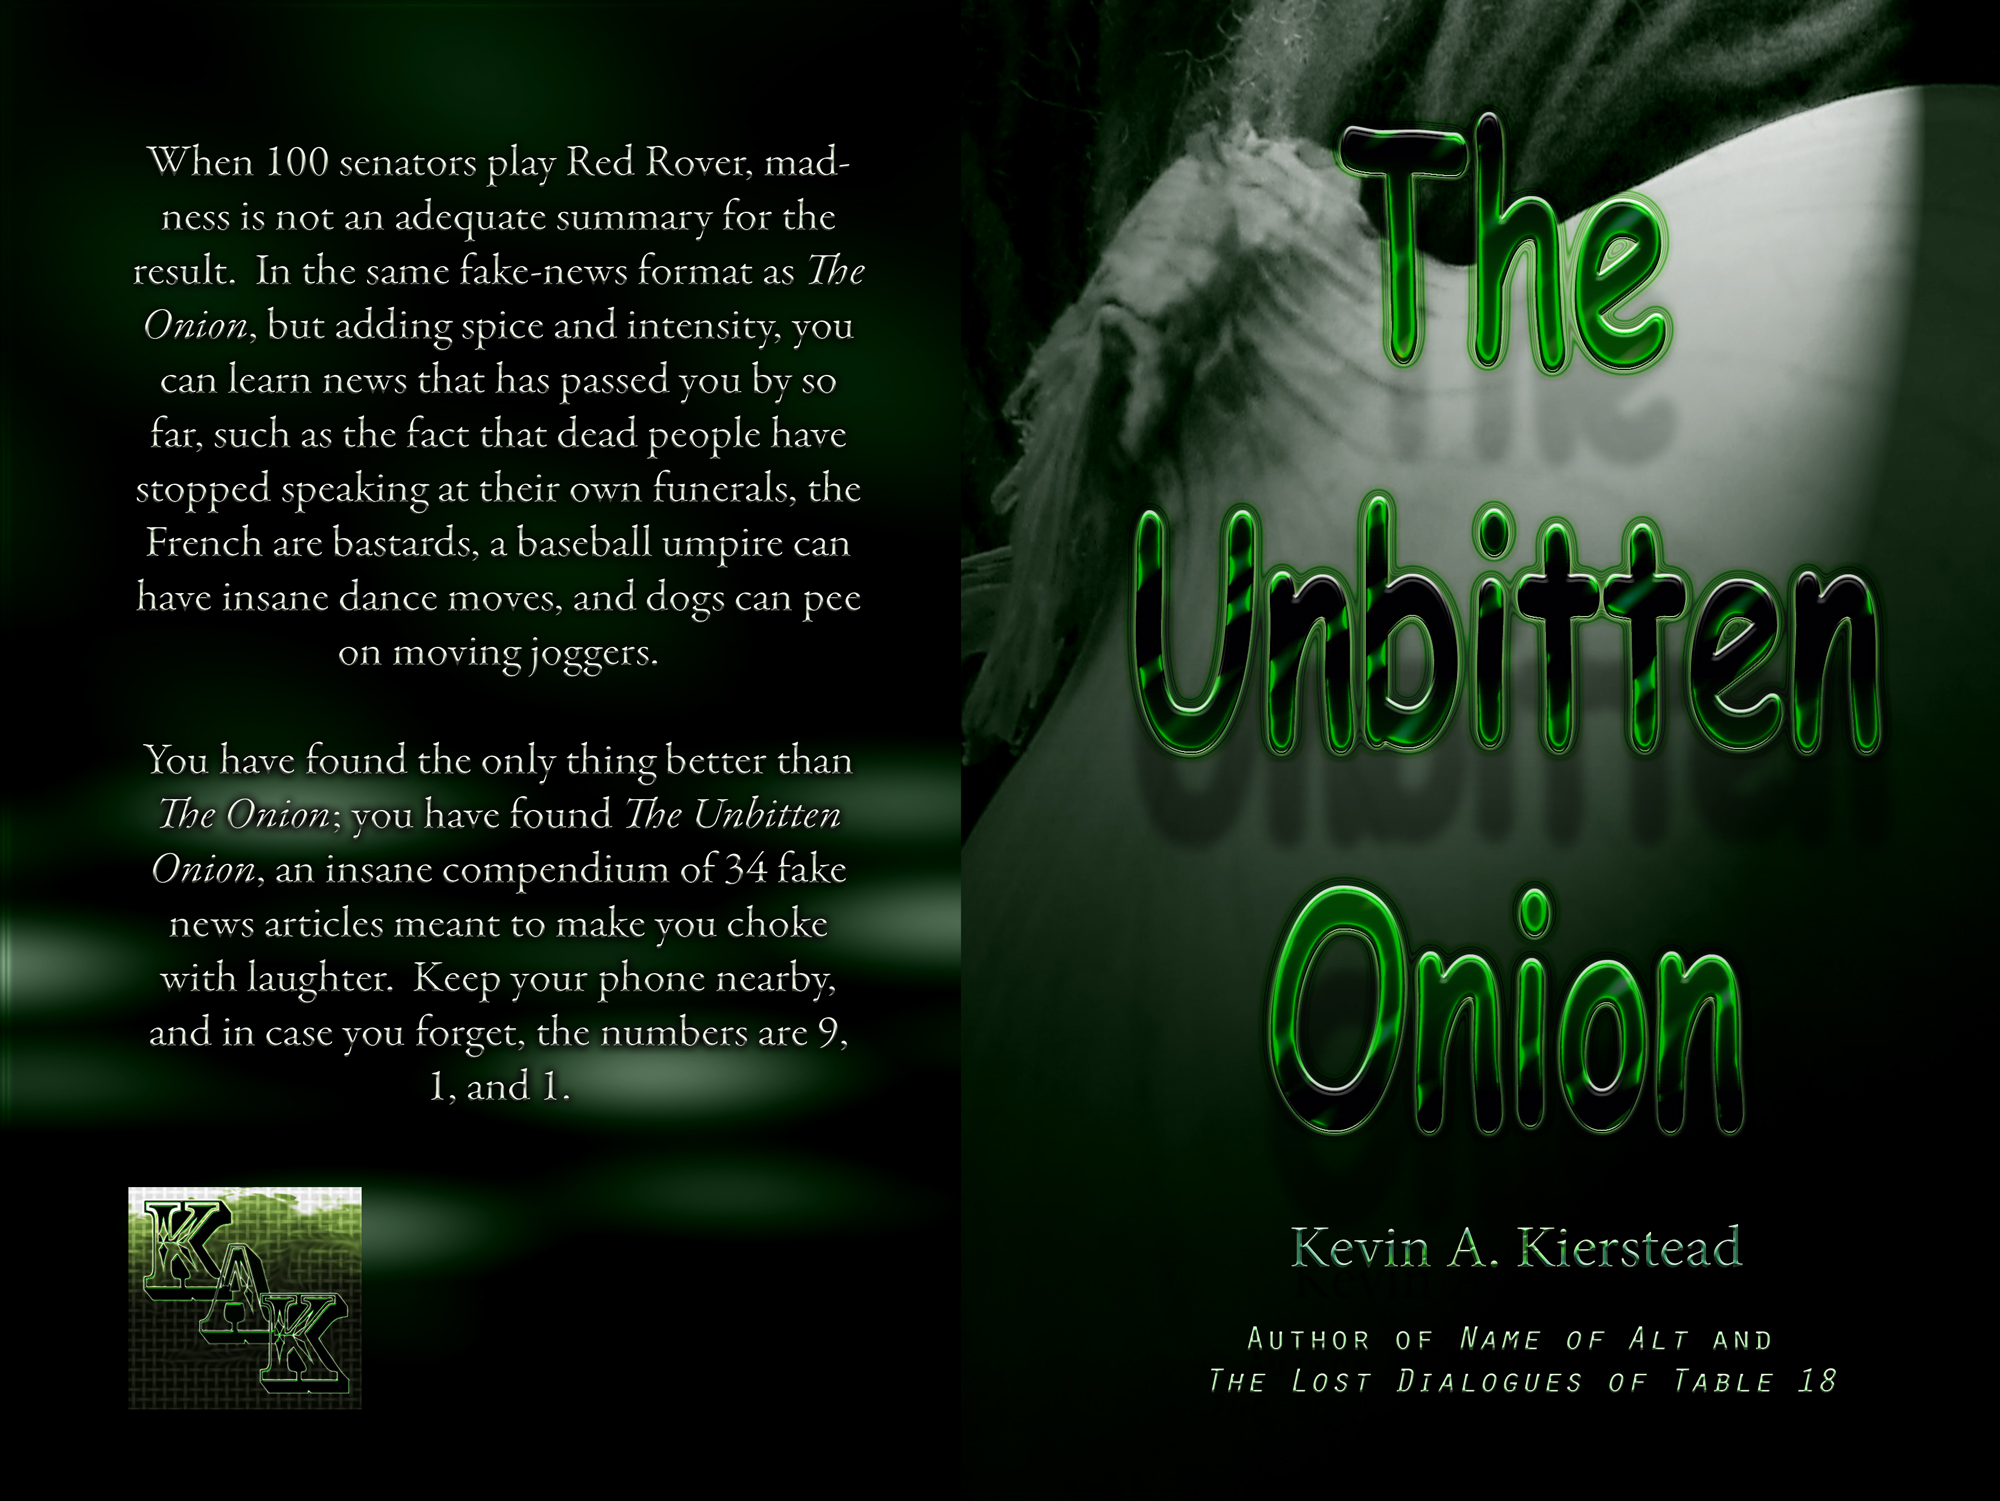 The Unbitten Onion